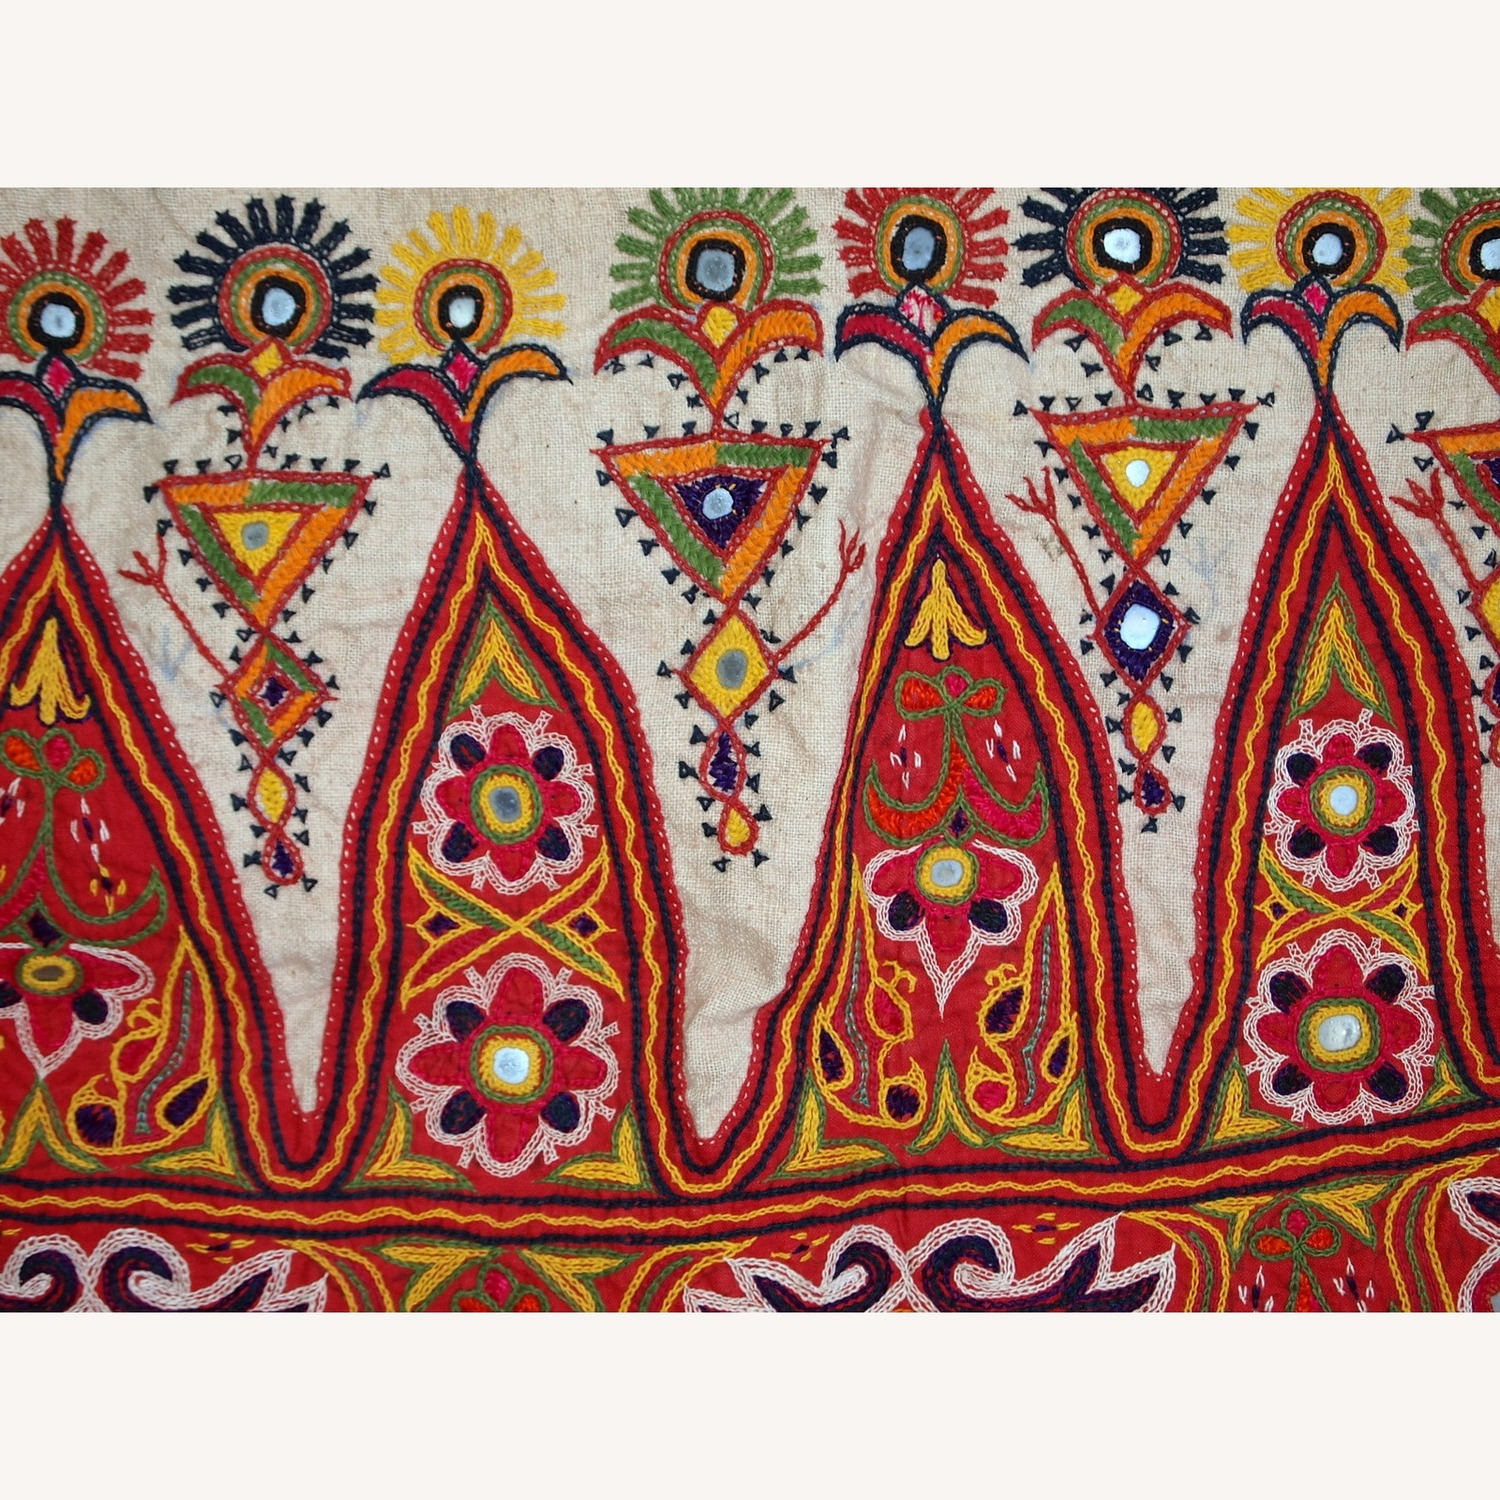 Handmade Indian Wall Hanging Embroidered Tapestry - image-6